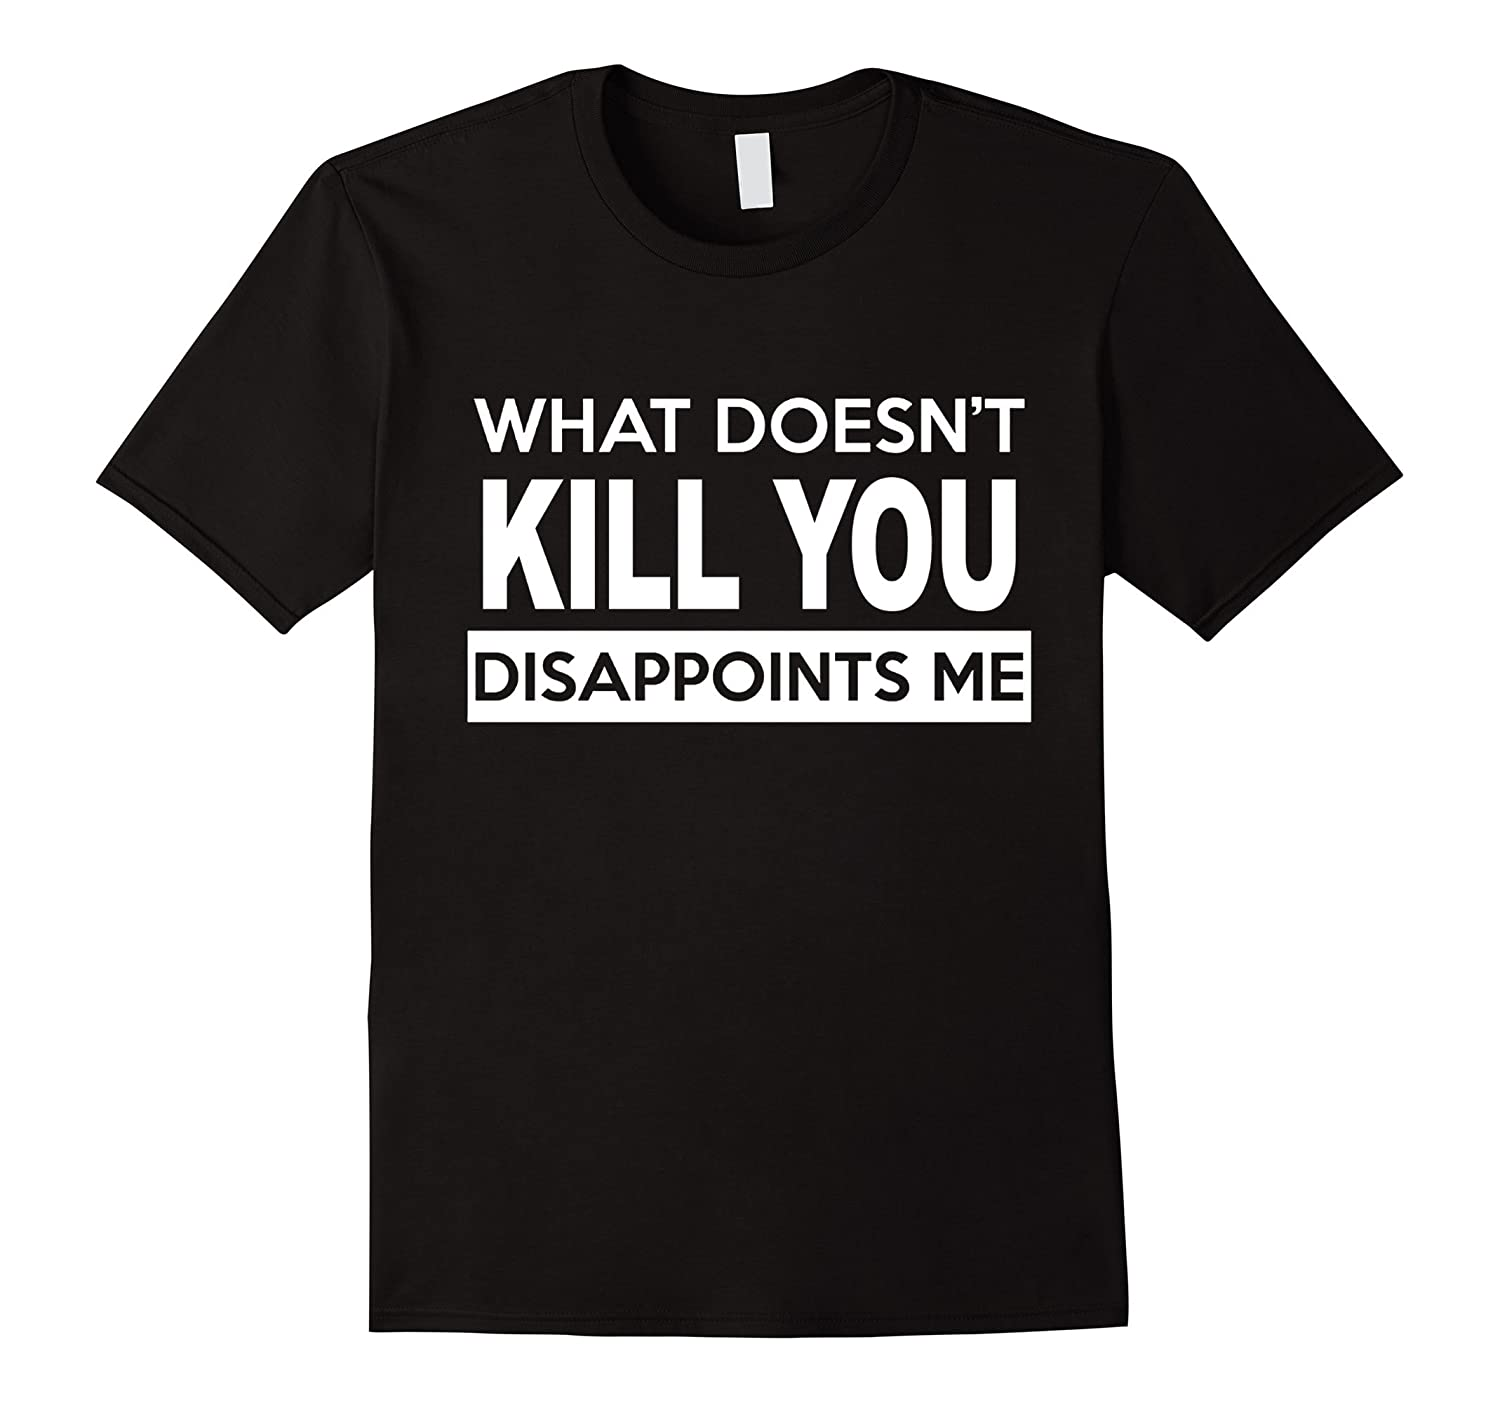 What Doesn't Kill You Disappoints Me Hot 2017 T-Shirt-ah my shirt one gift